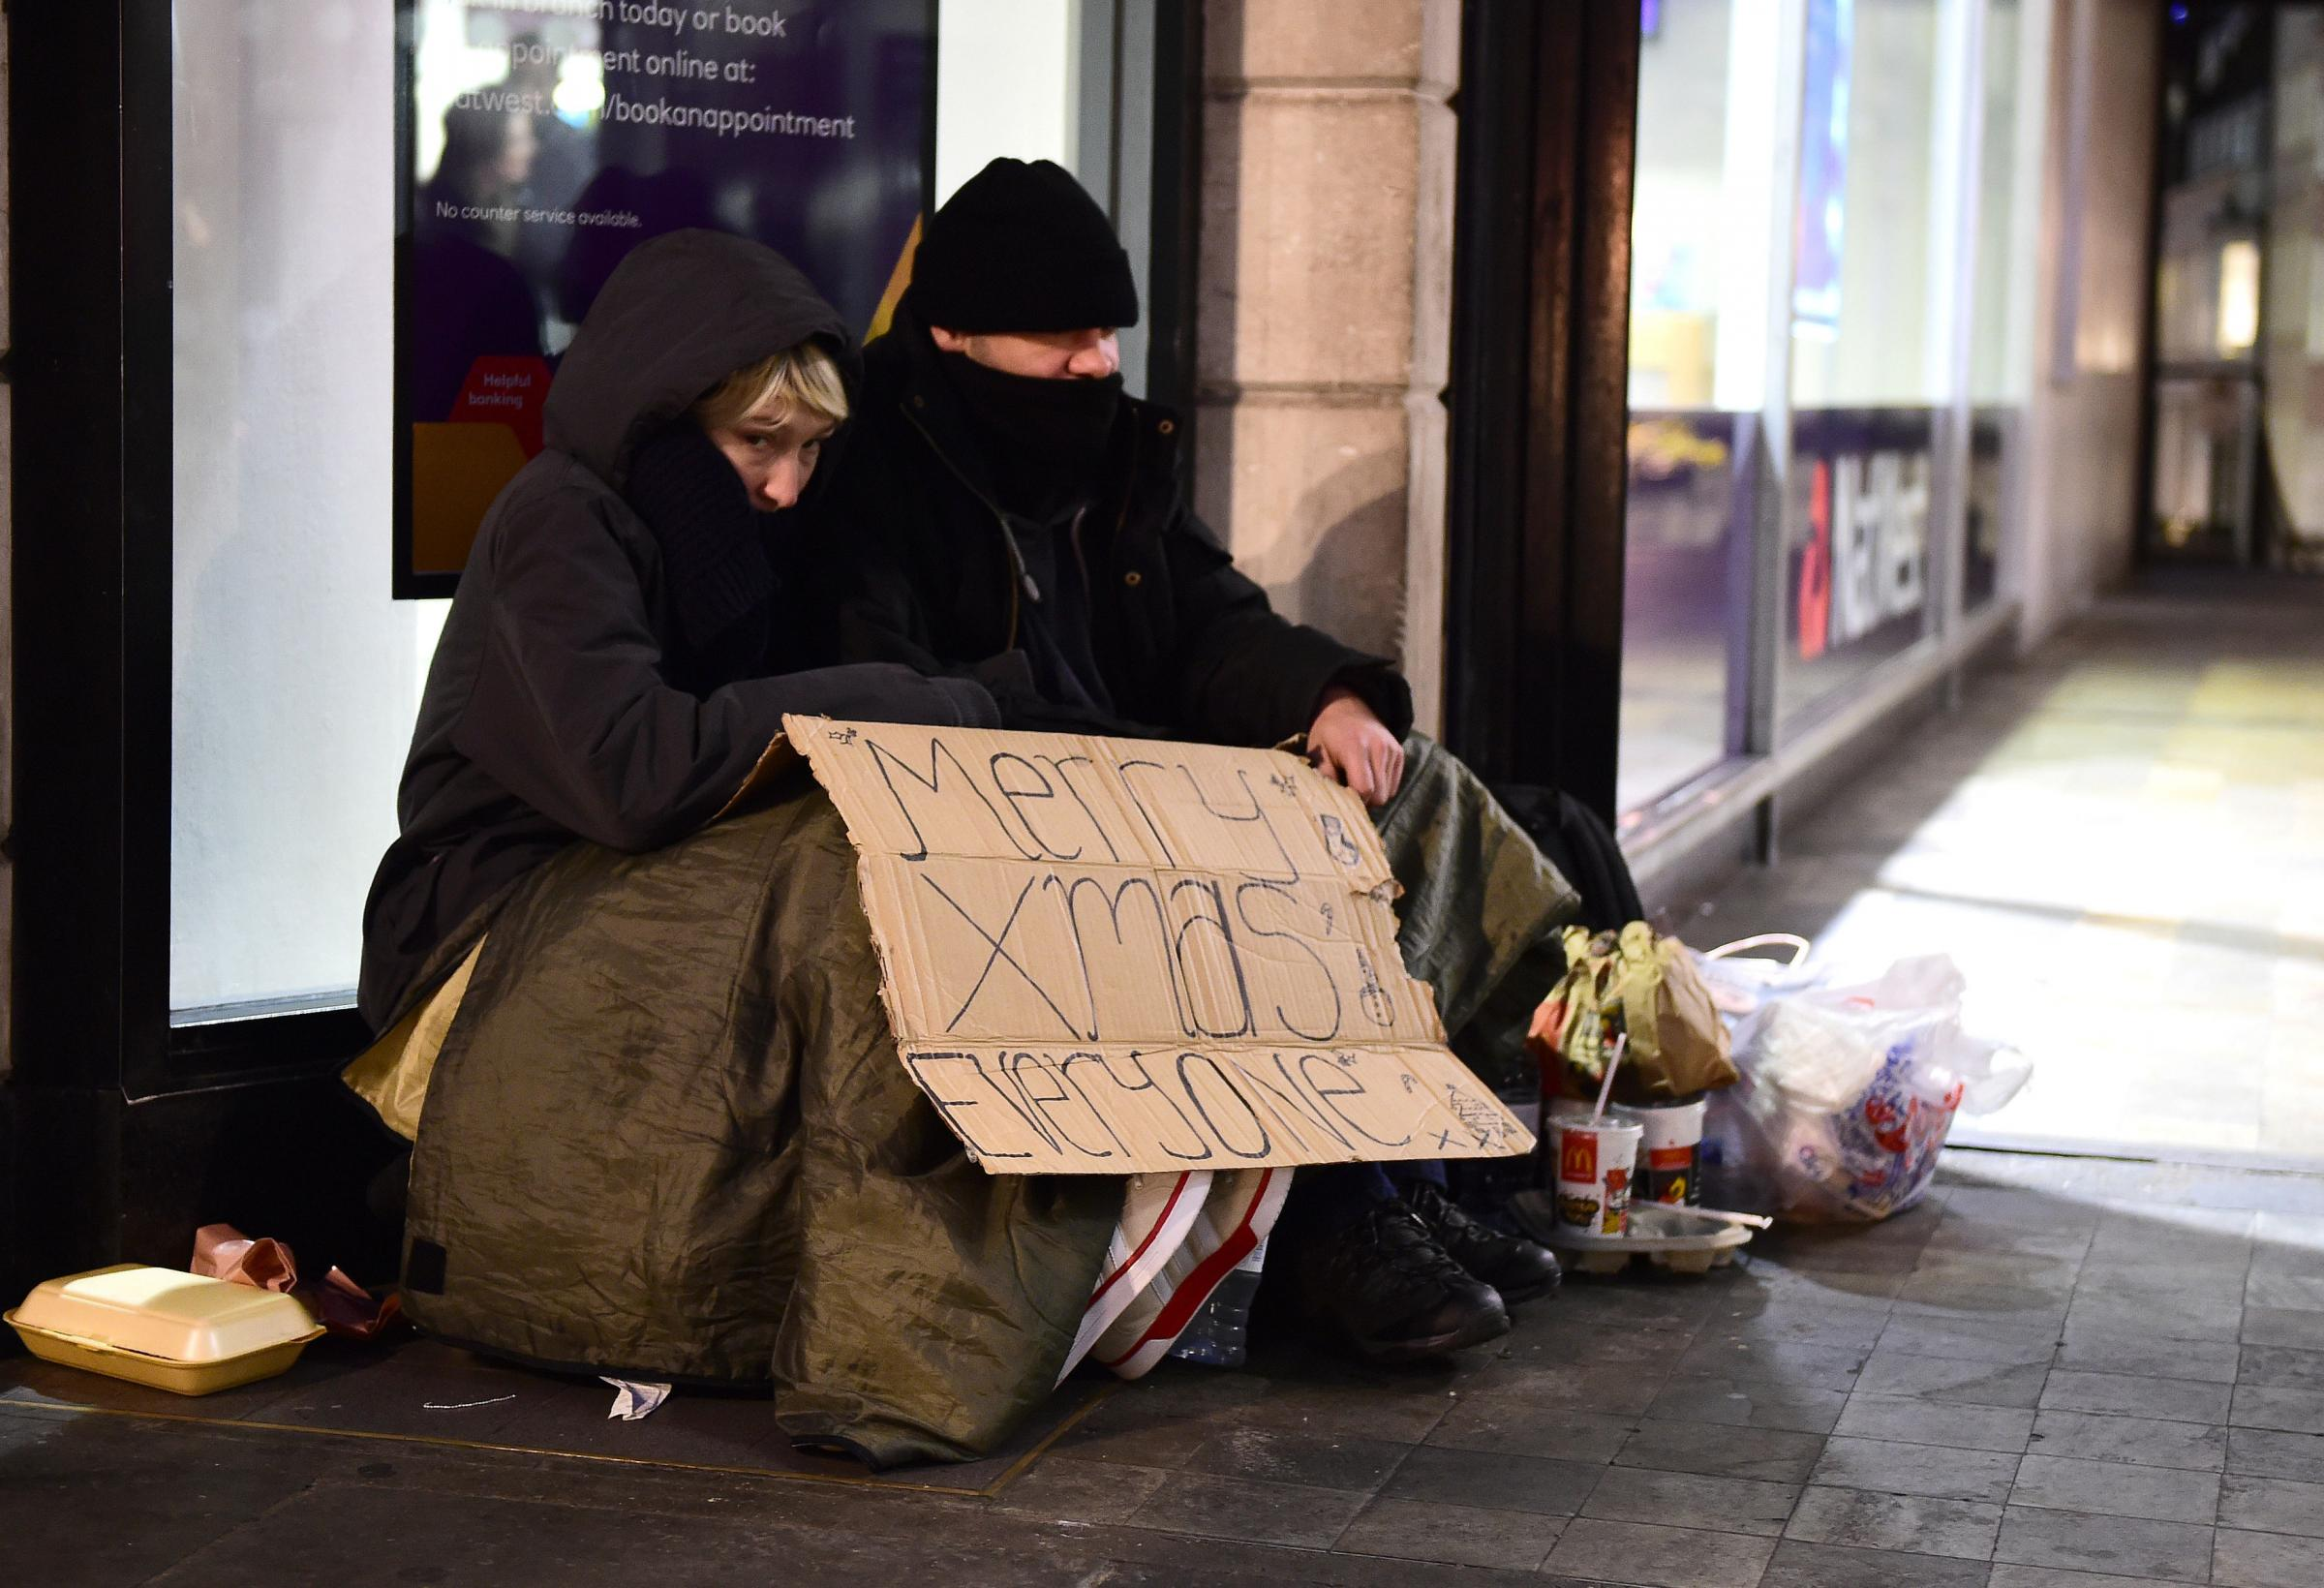 Labour: soaring levels of homelessness under Cameron mean more children facing Christmas on streets